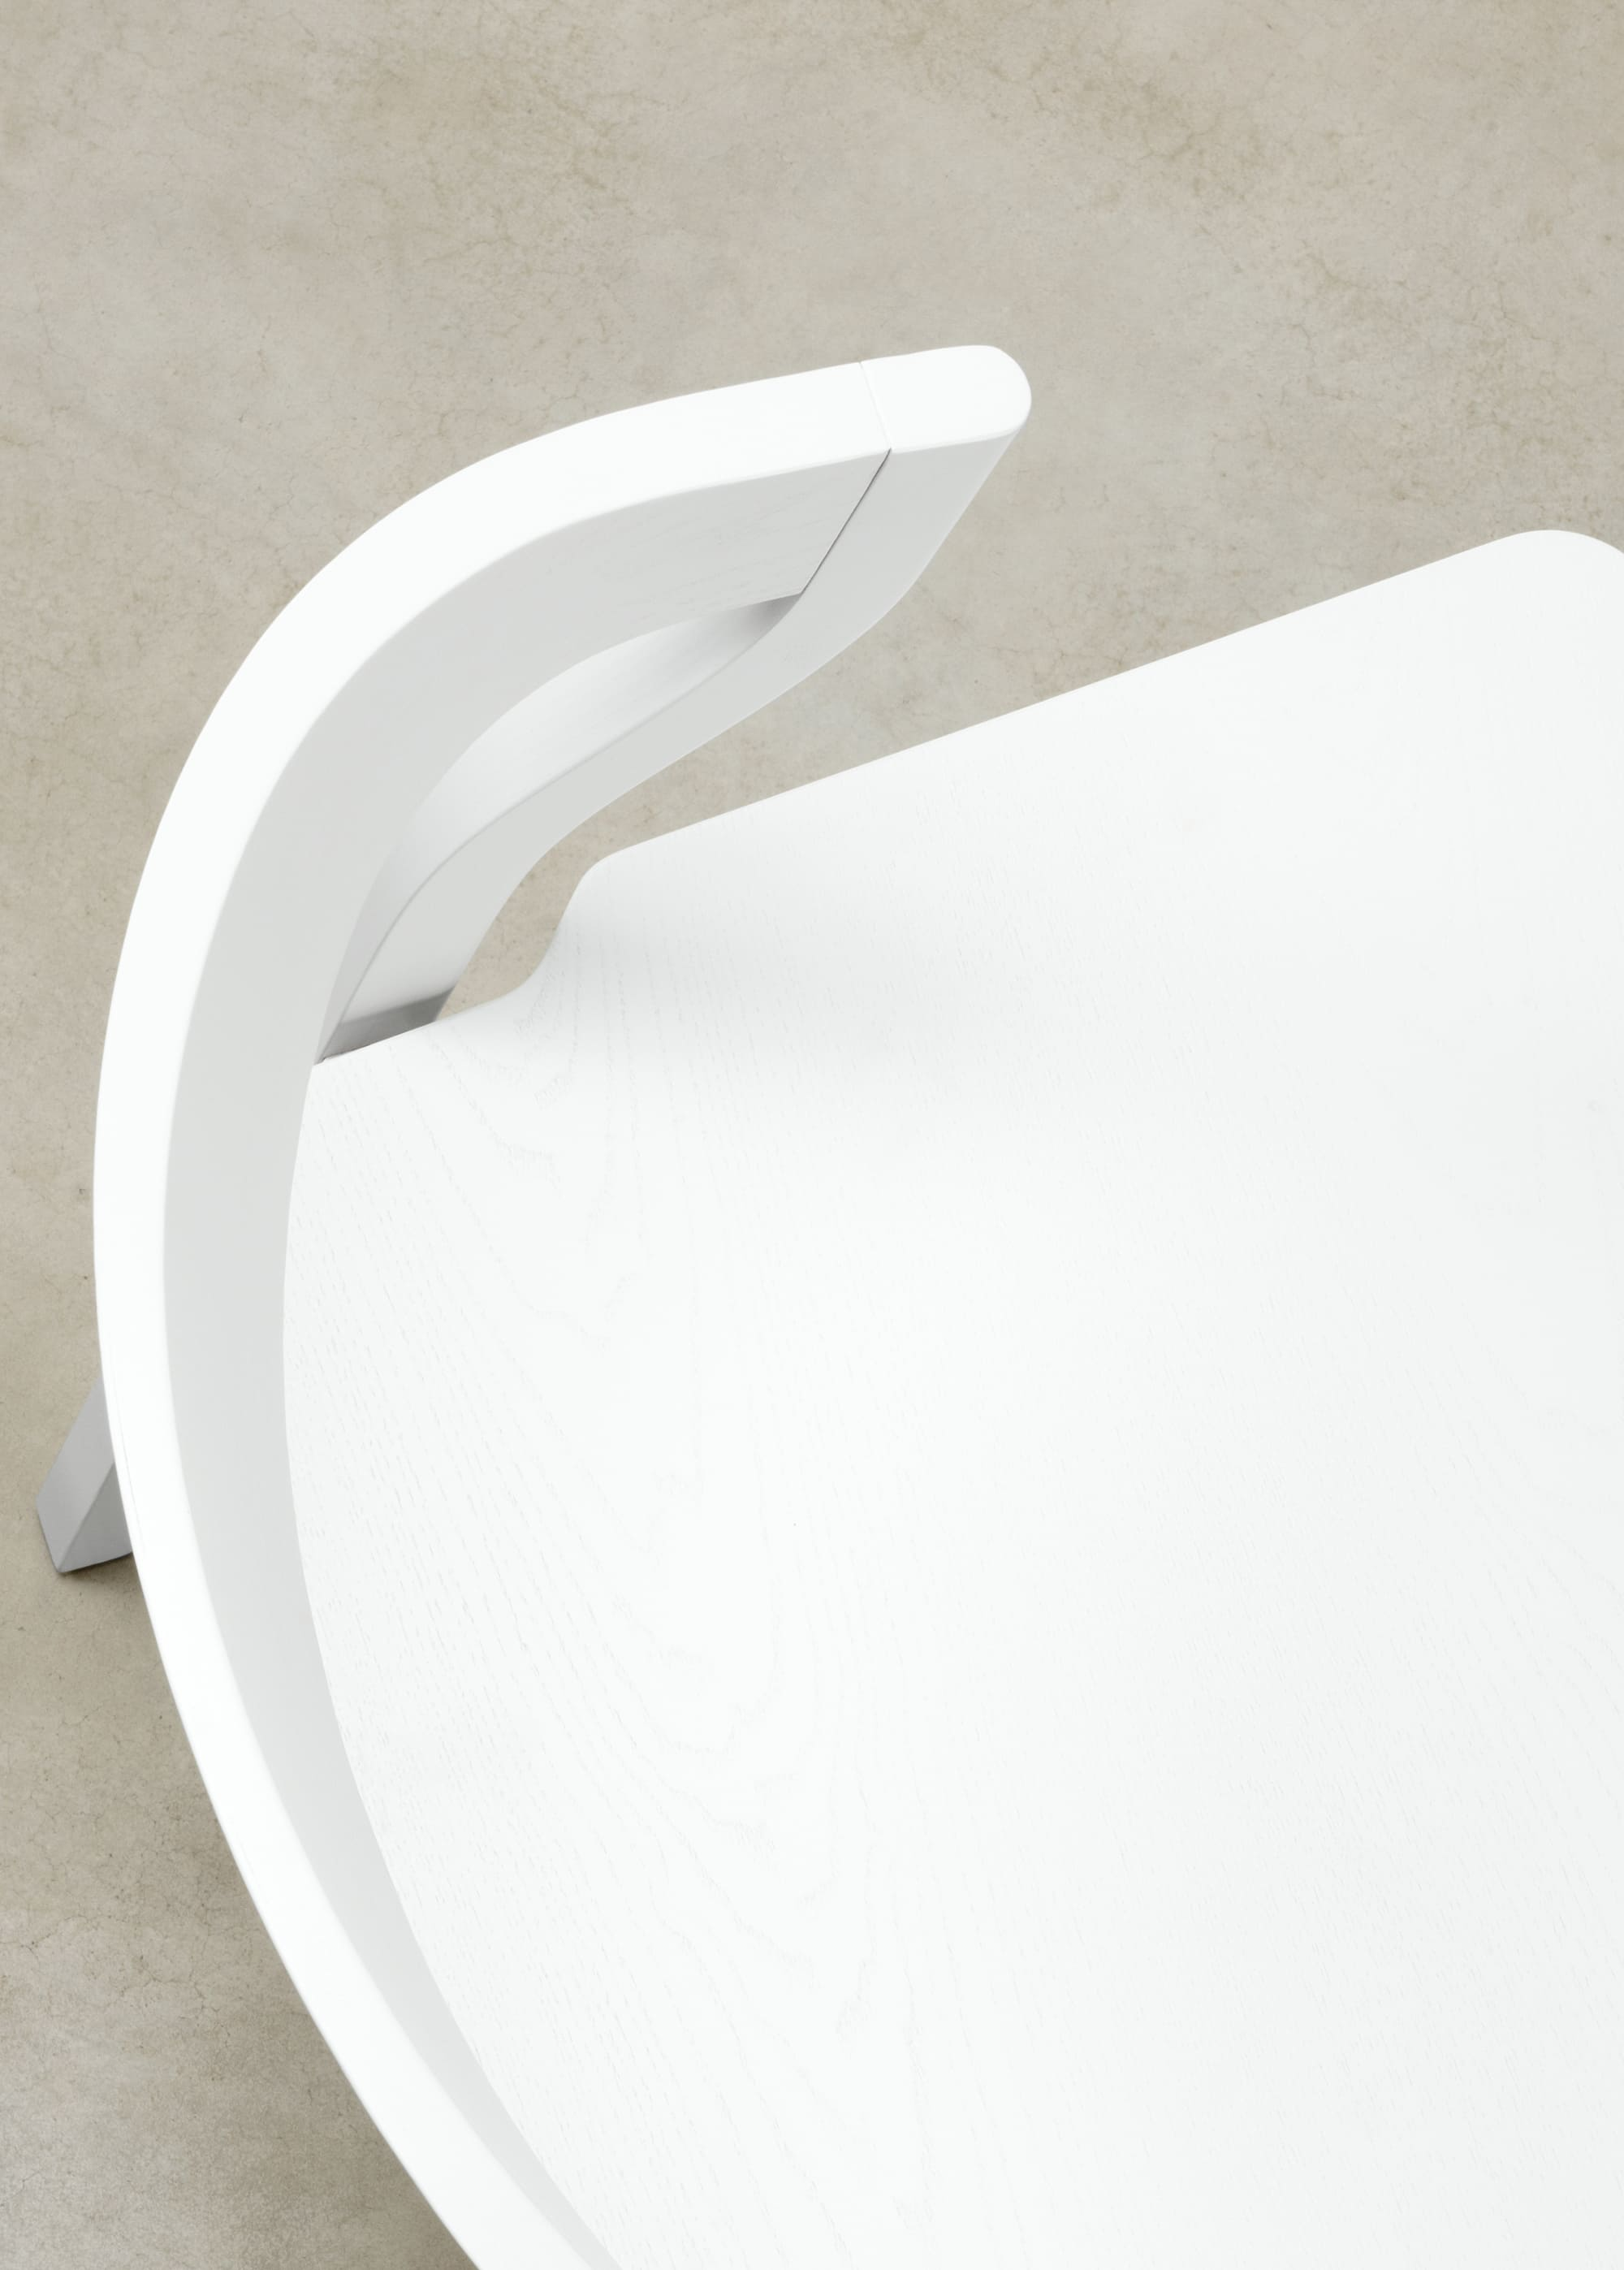 Chairs by Bedont seen at Private Residence, Melbourne - Kalea Chair